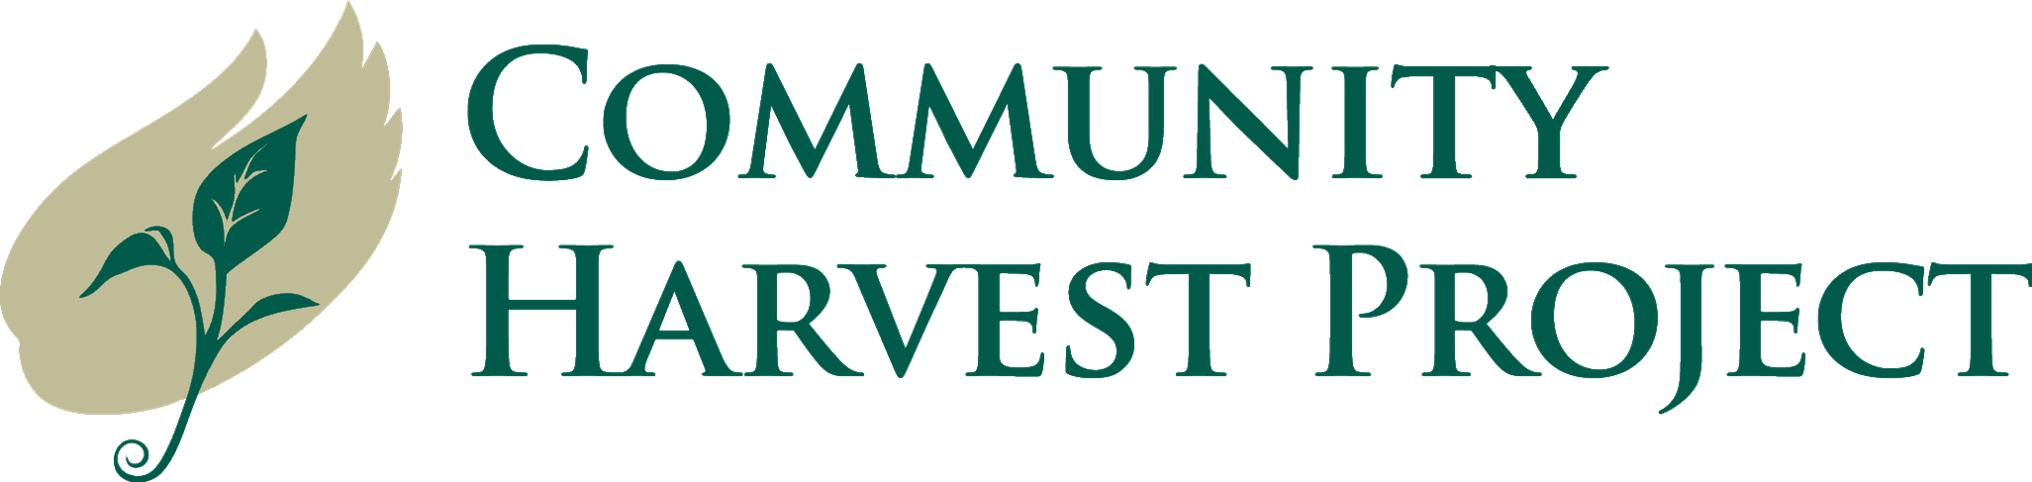 Community Harvest Project Logo